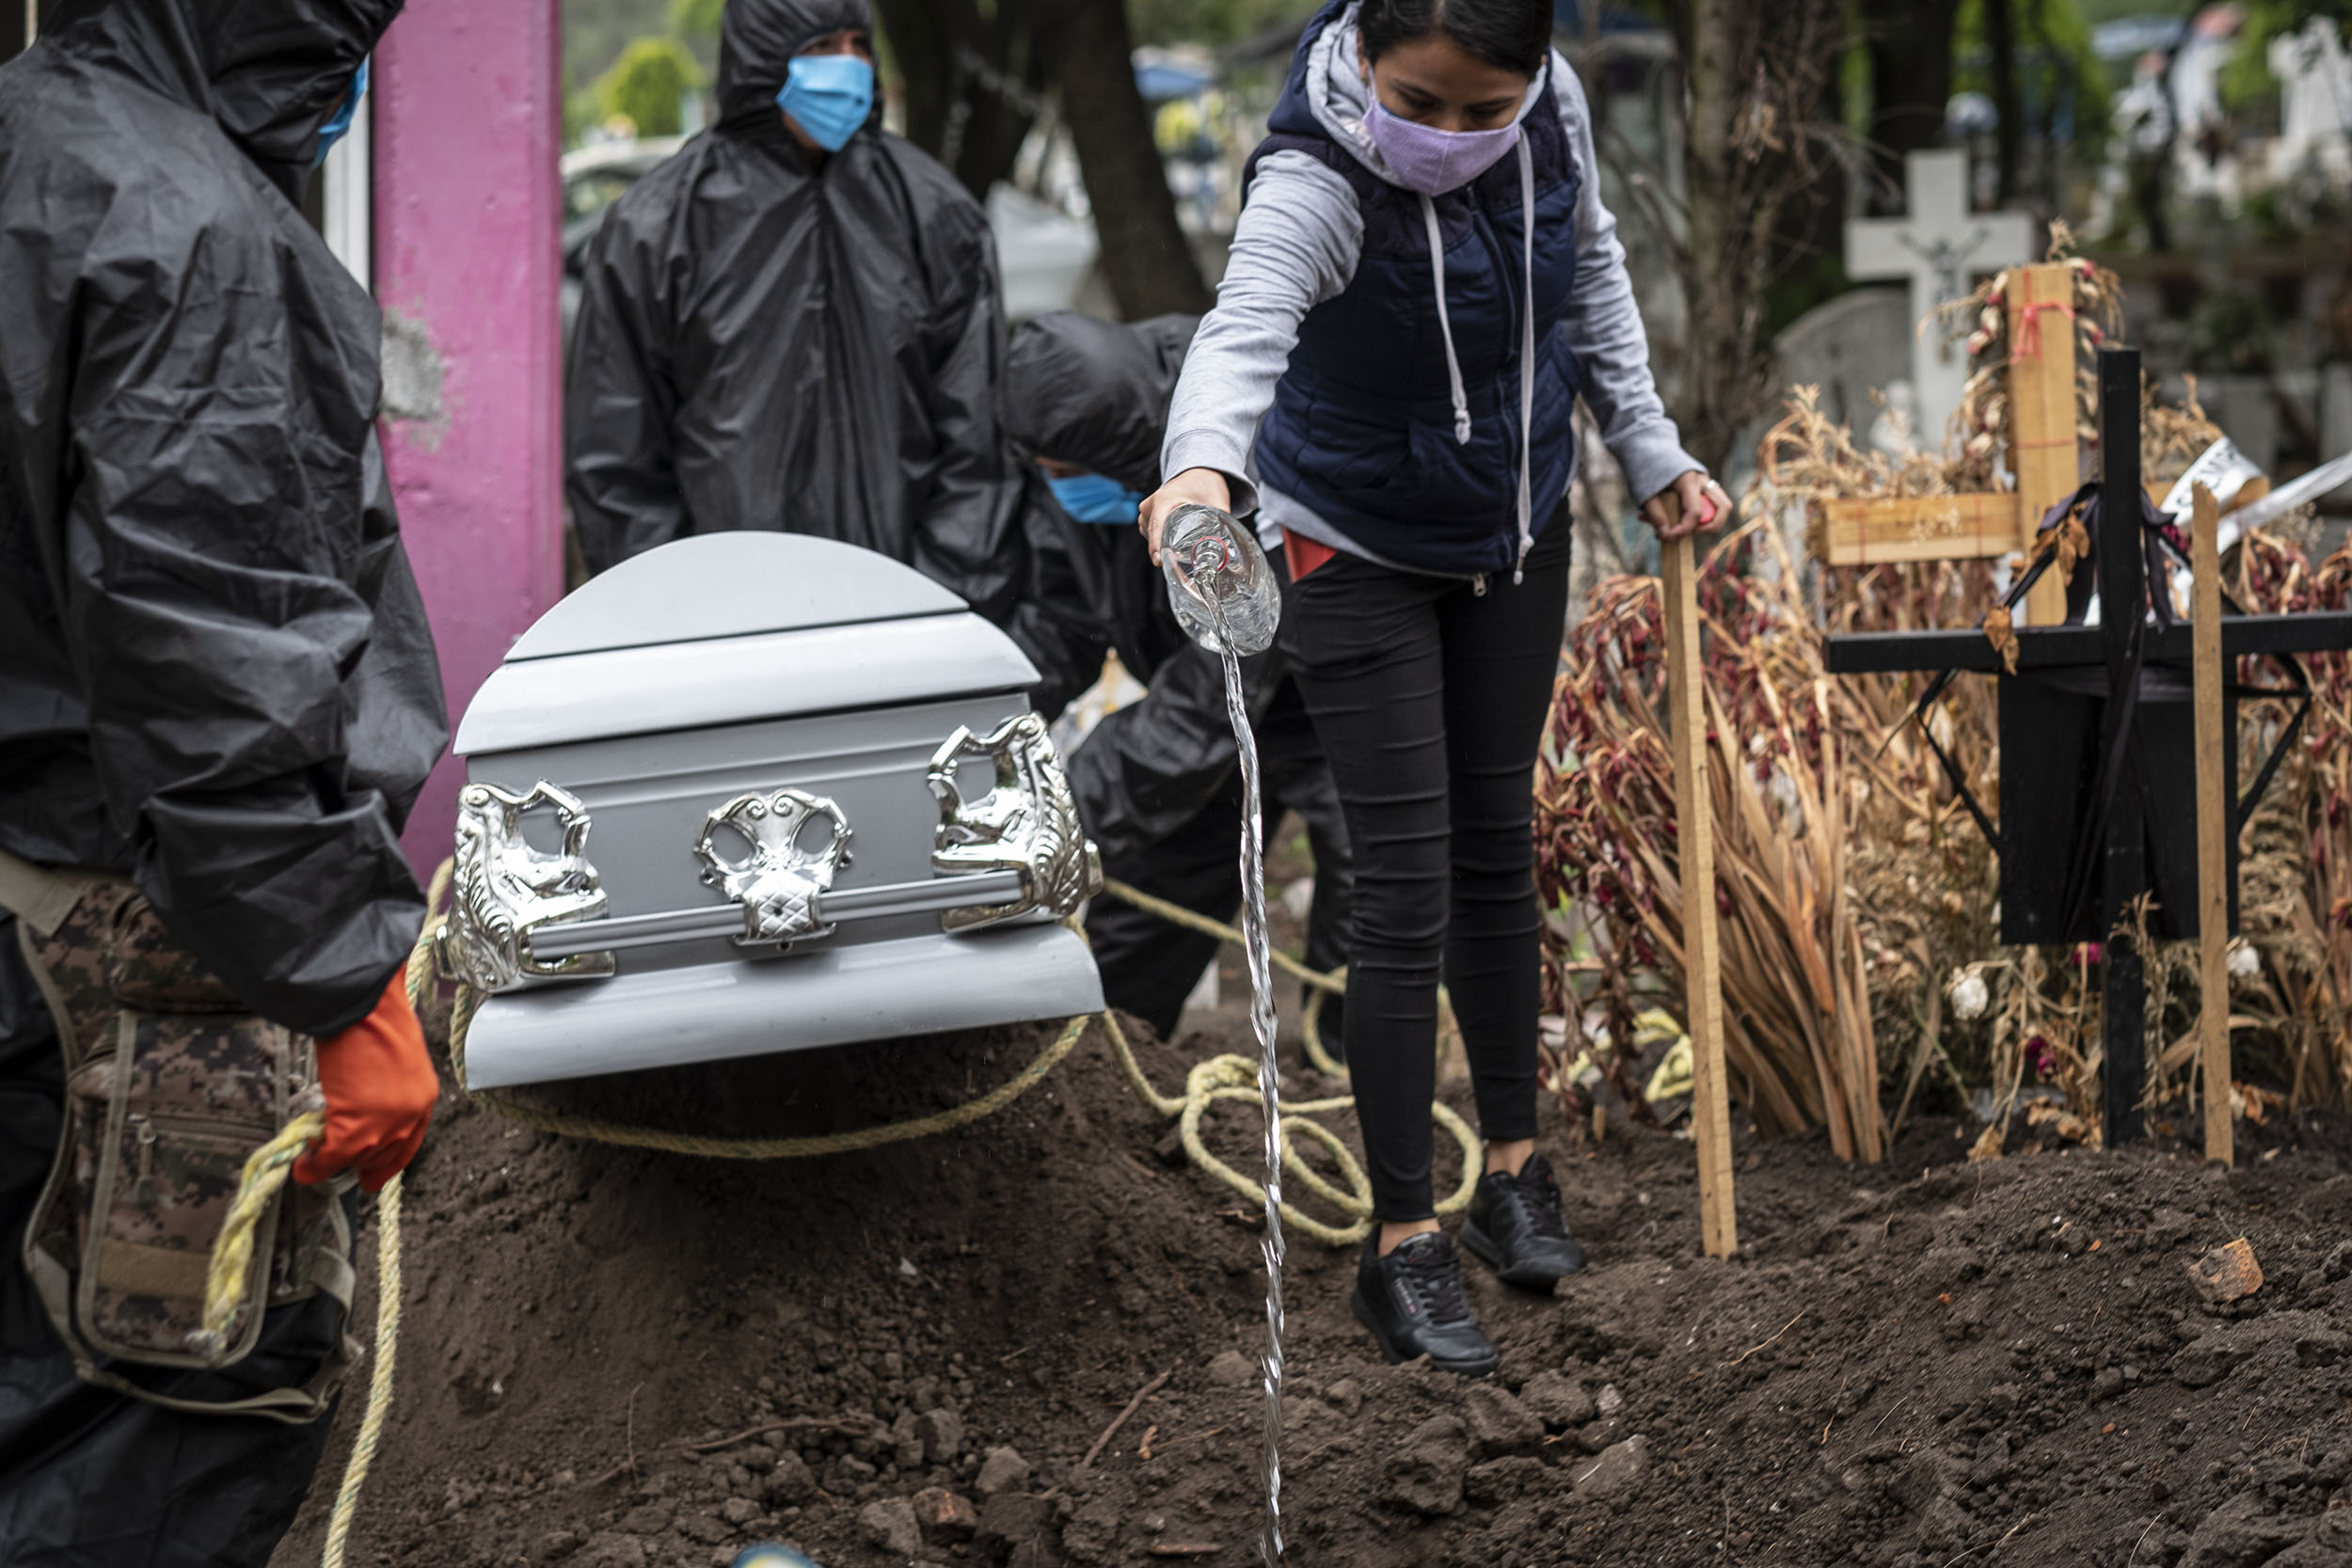 A woman wearing a face mask pours holy water into a grave during the funeral of a COVID 19 death victim at the San Isidro cemetery in Mexico, on June 24.